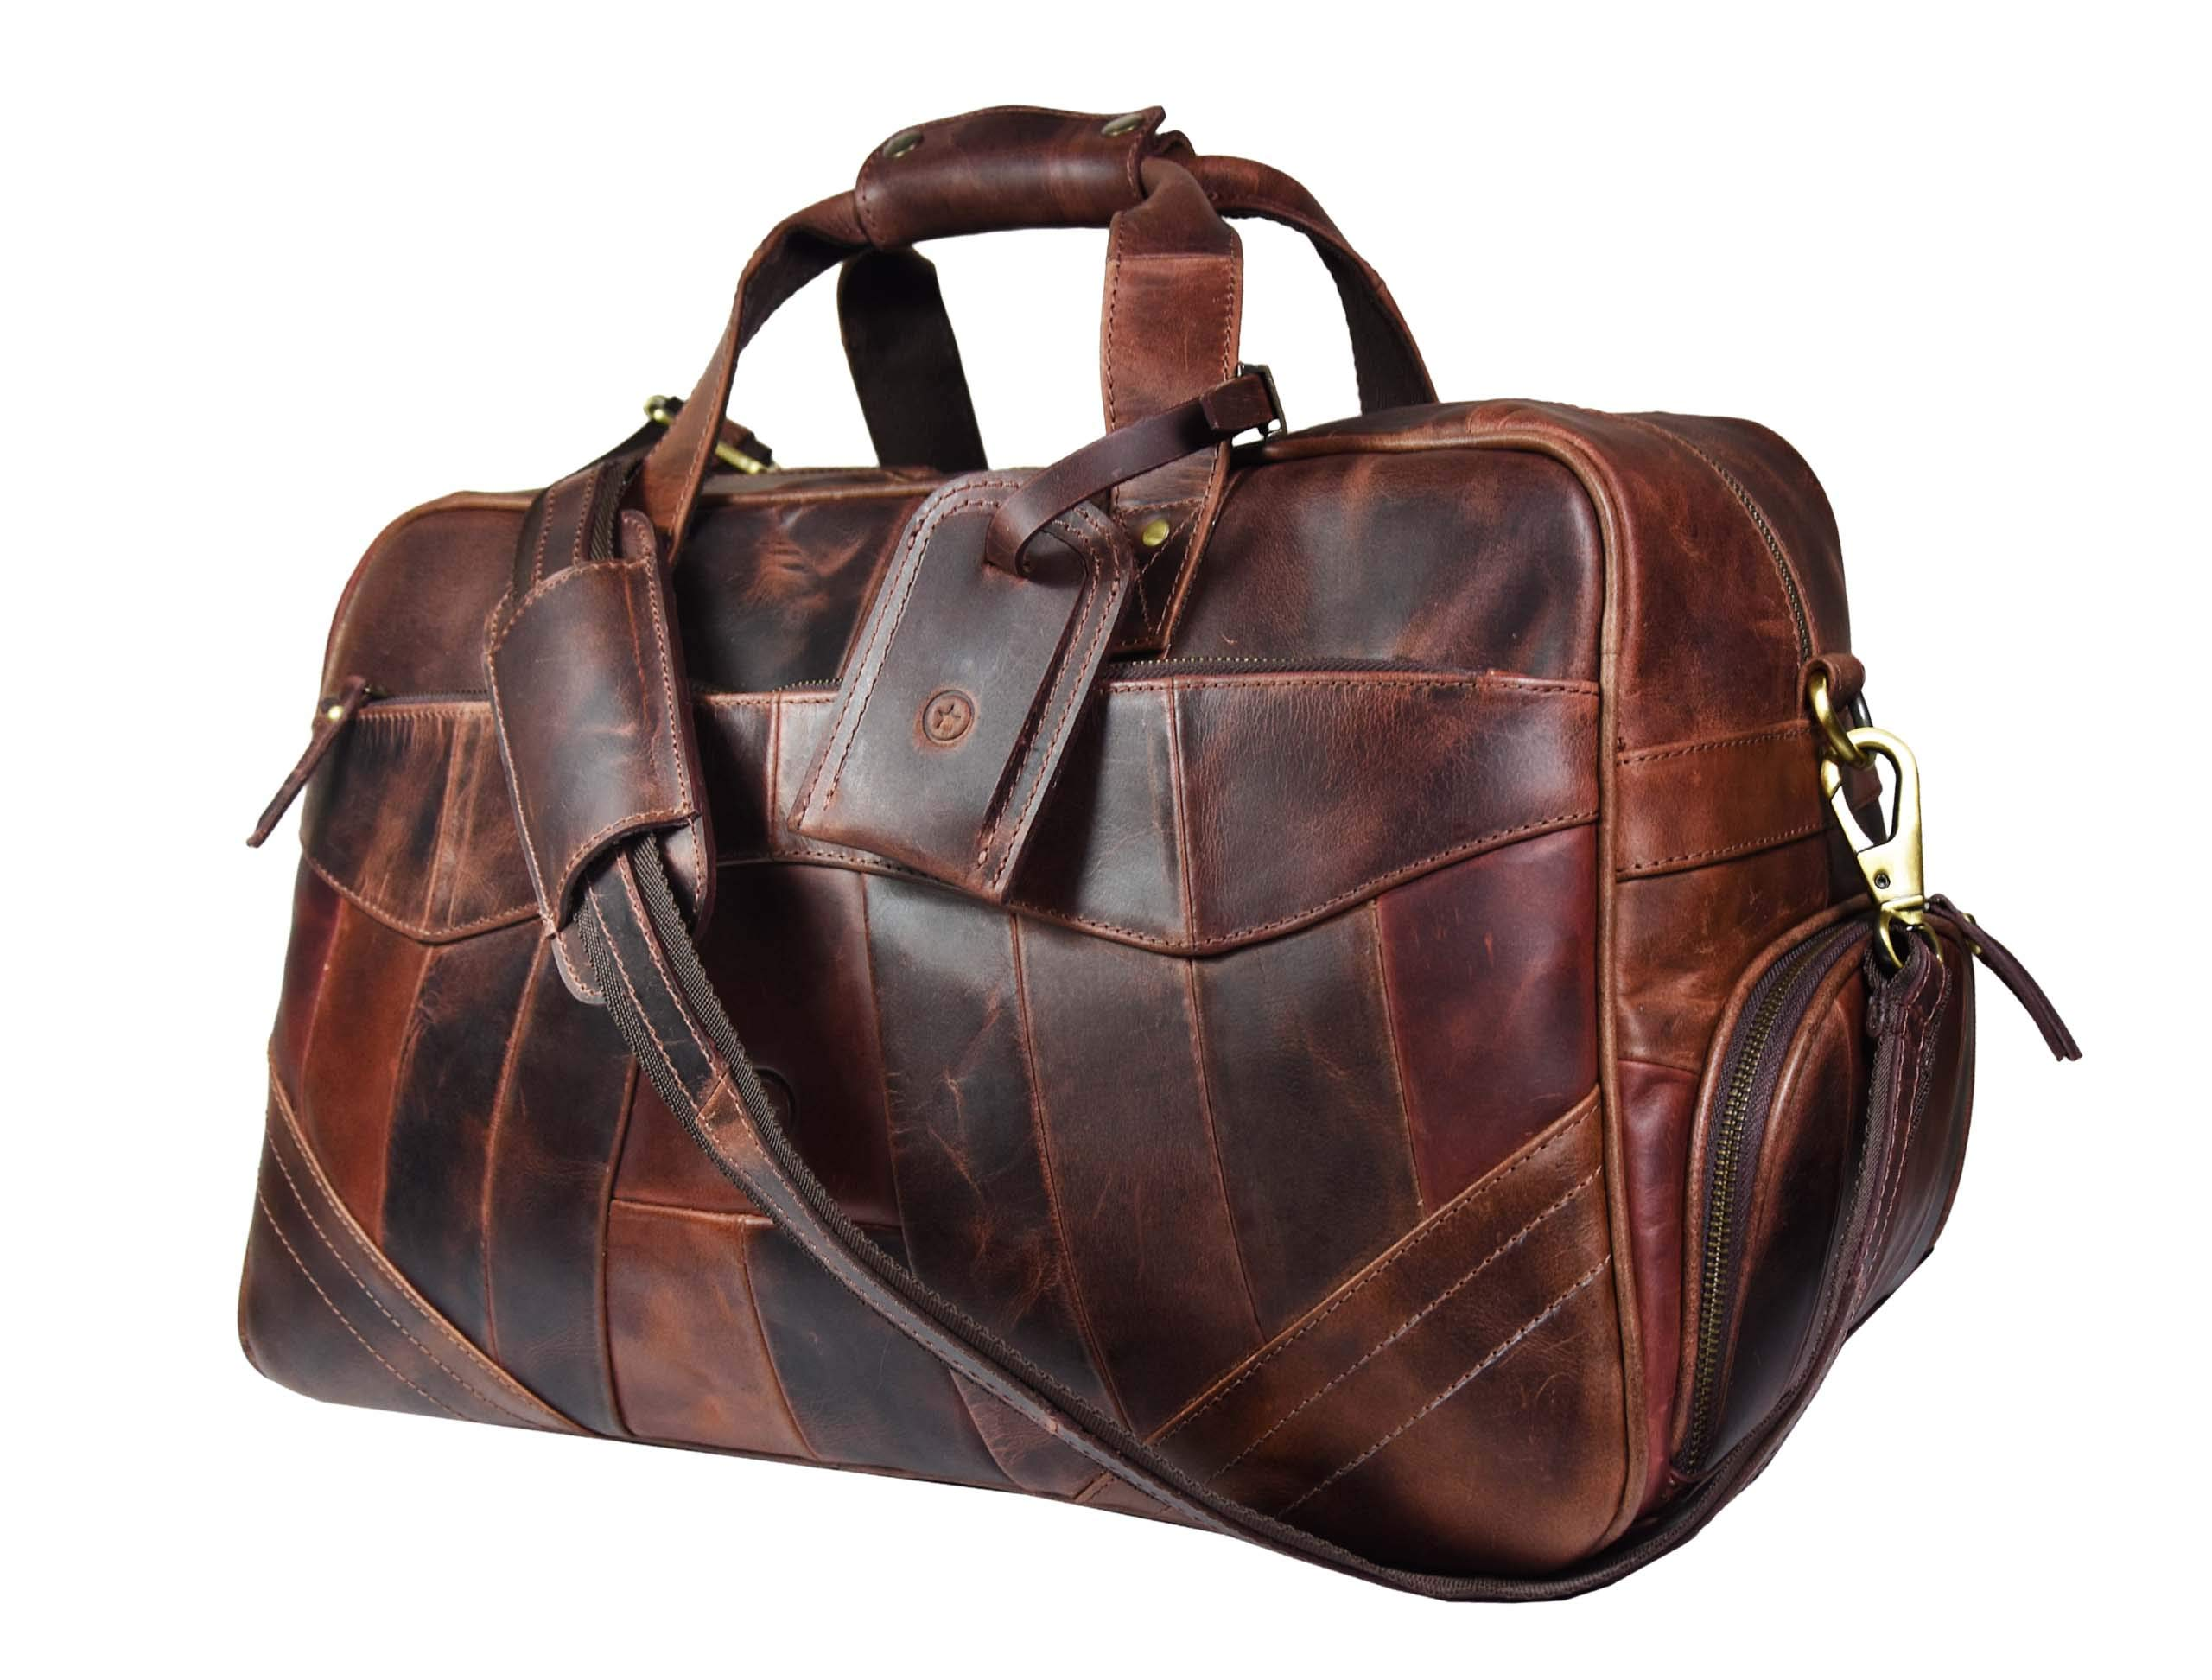 Leather Travel Duffle Bag Overnight Weekend Luggage Carry On Underseat Airplanes (Walnut Brown)